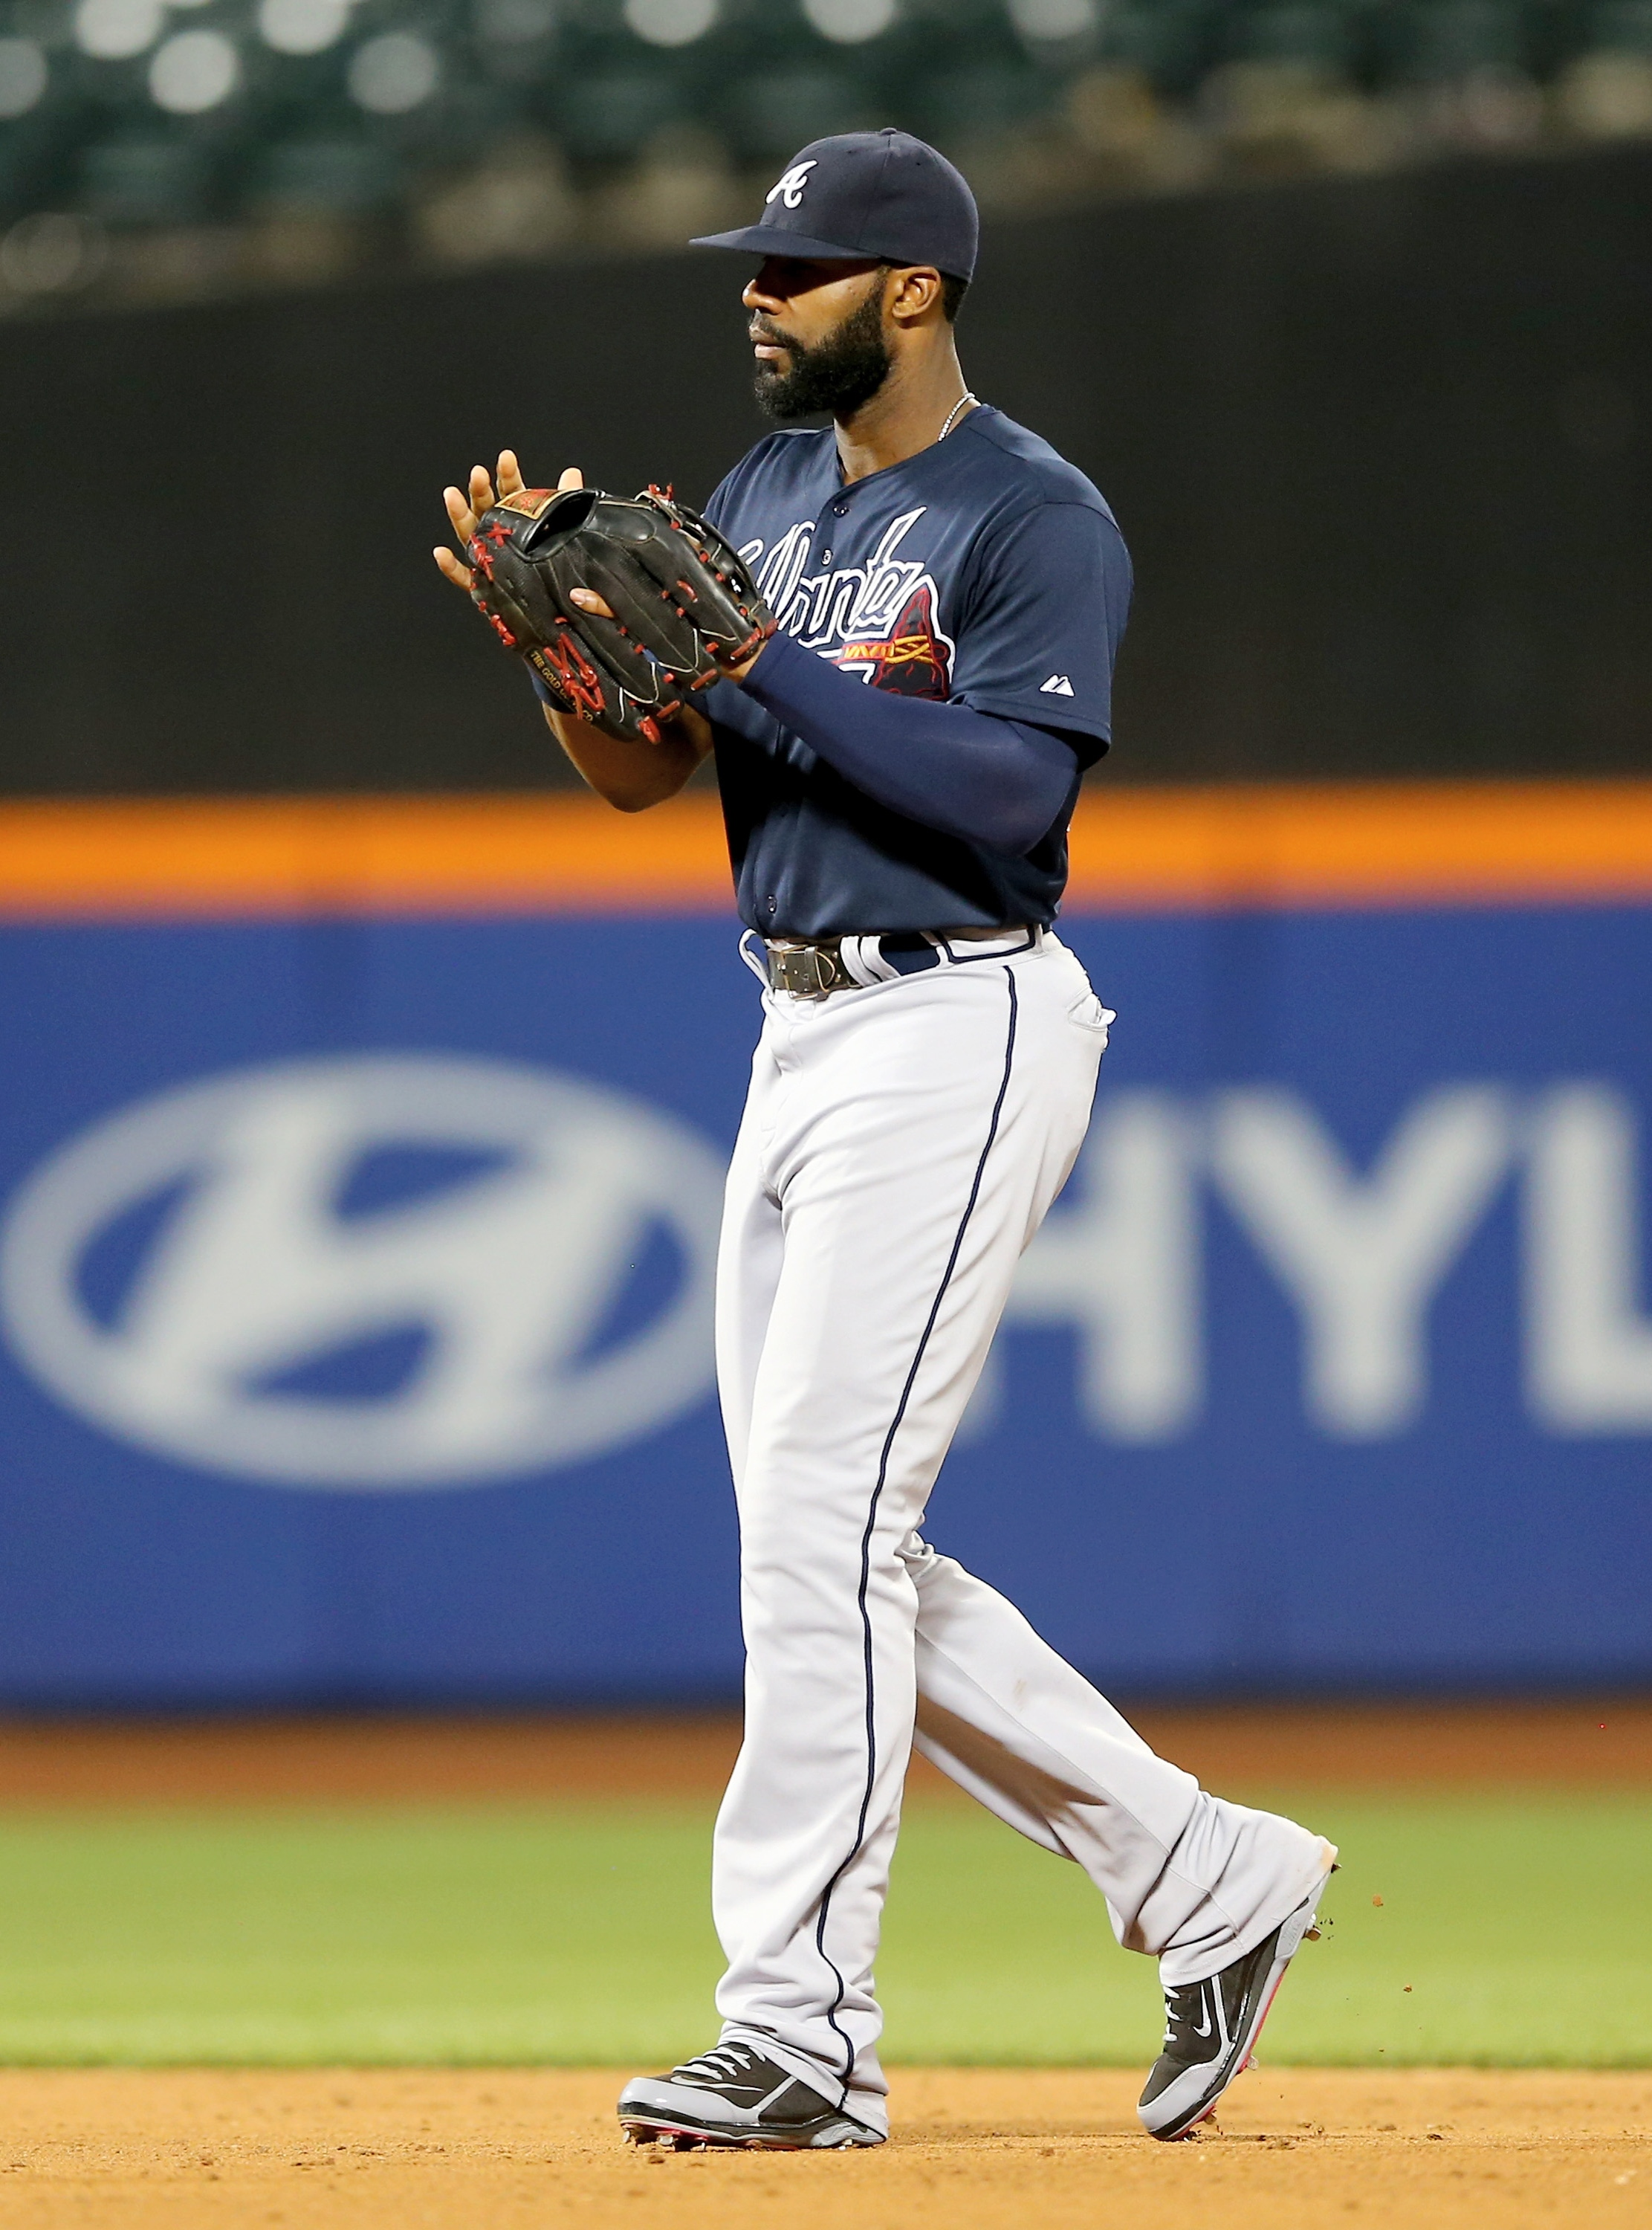 At 25, can Jason Heyward get his career back on track in St. Louis? It may cost only a Round 7 pick to find out. (Getty)